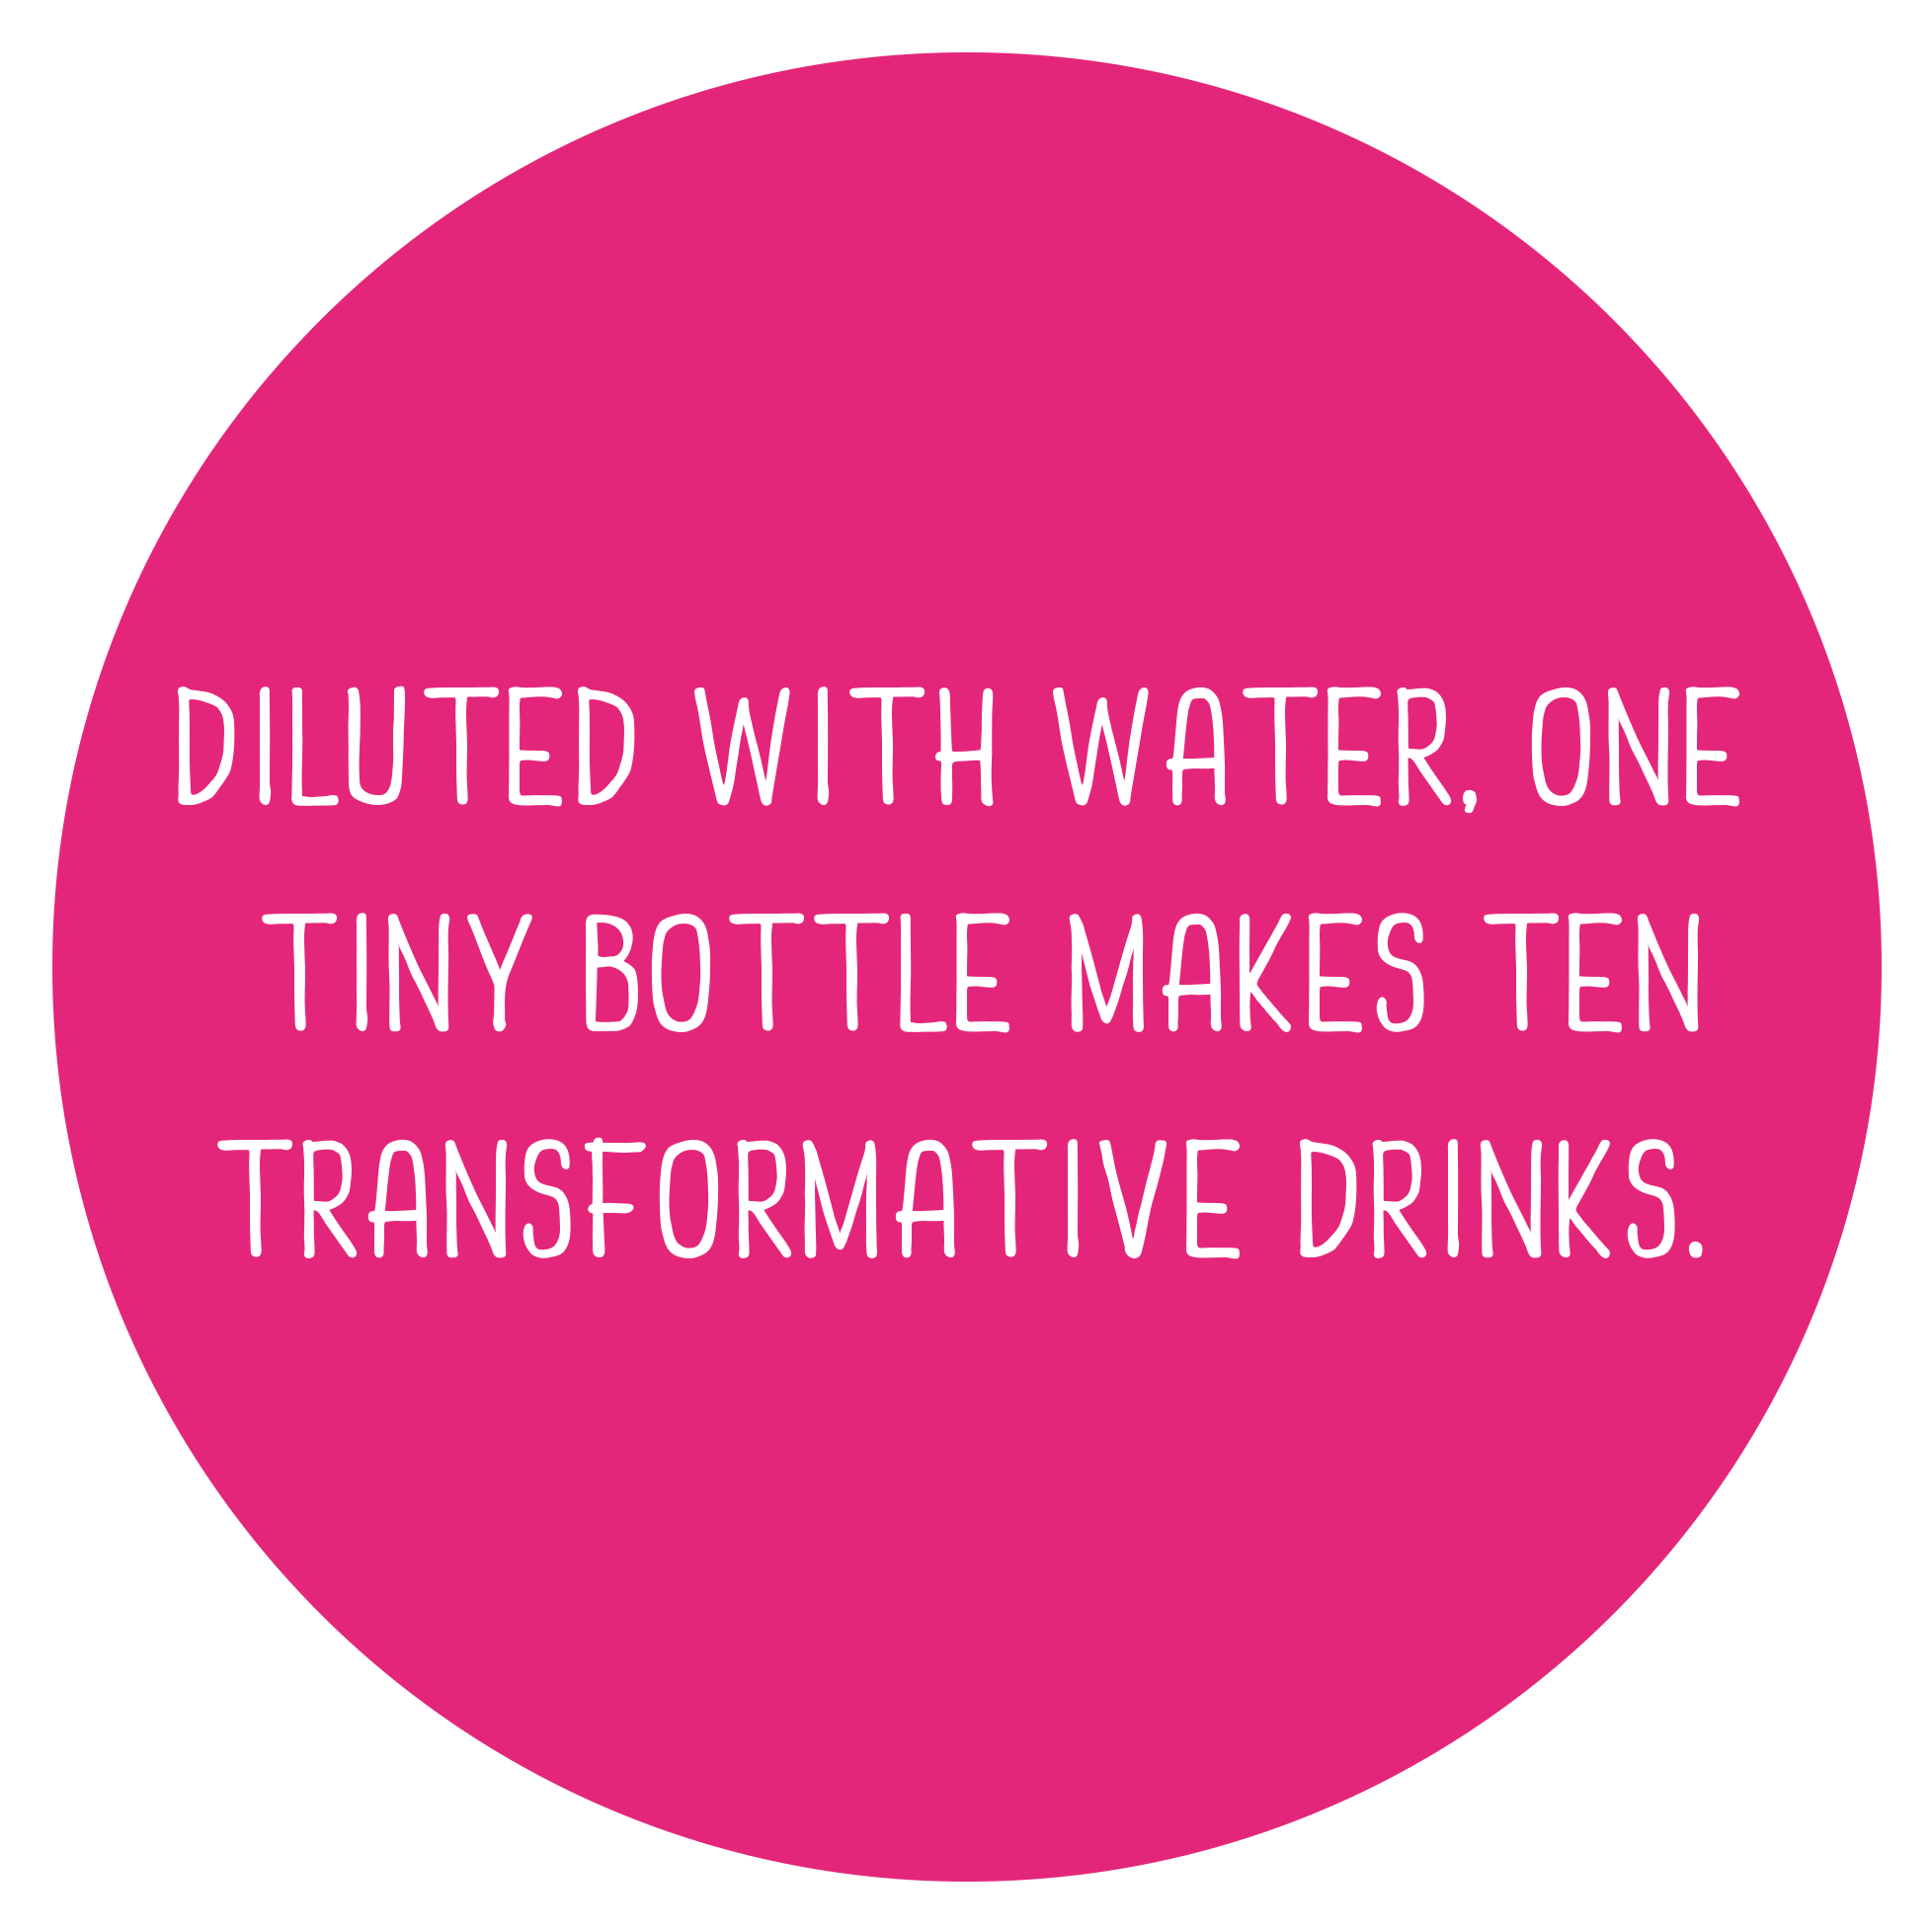 diluted-with-water-one-tiny-bottle-makes-ten-transformative-drinks.png